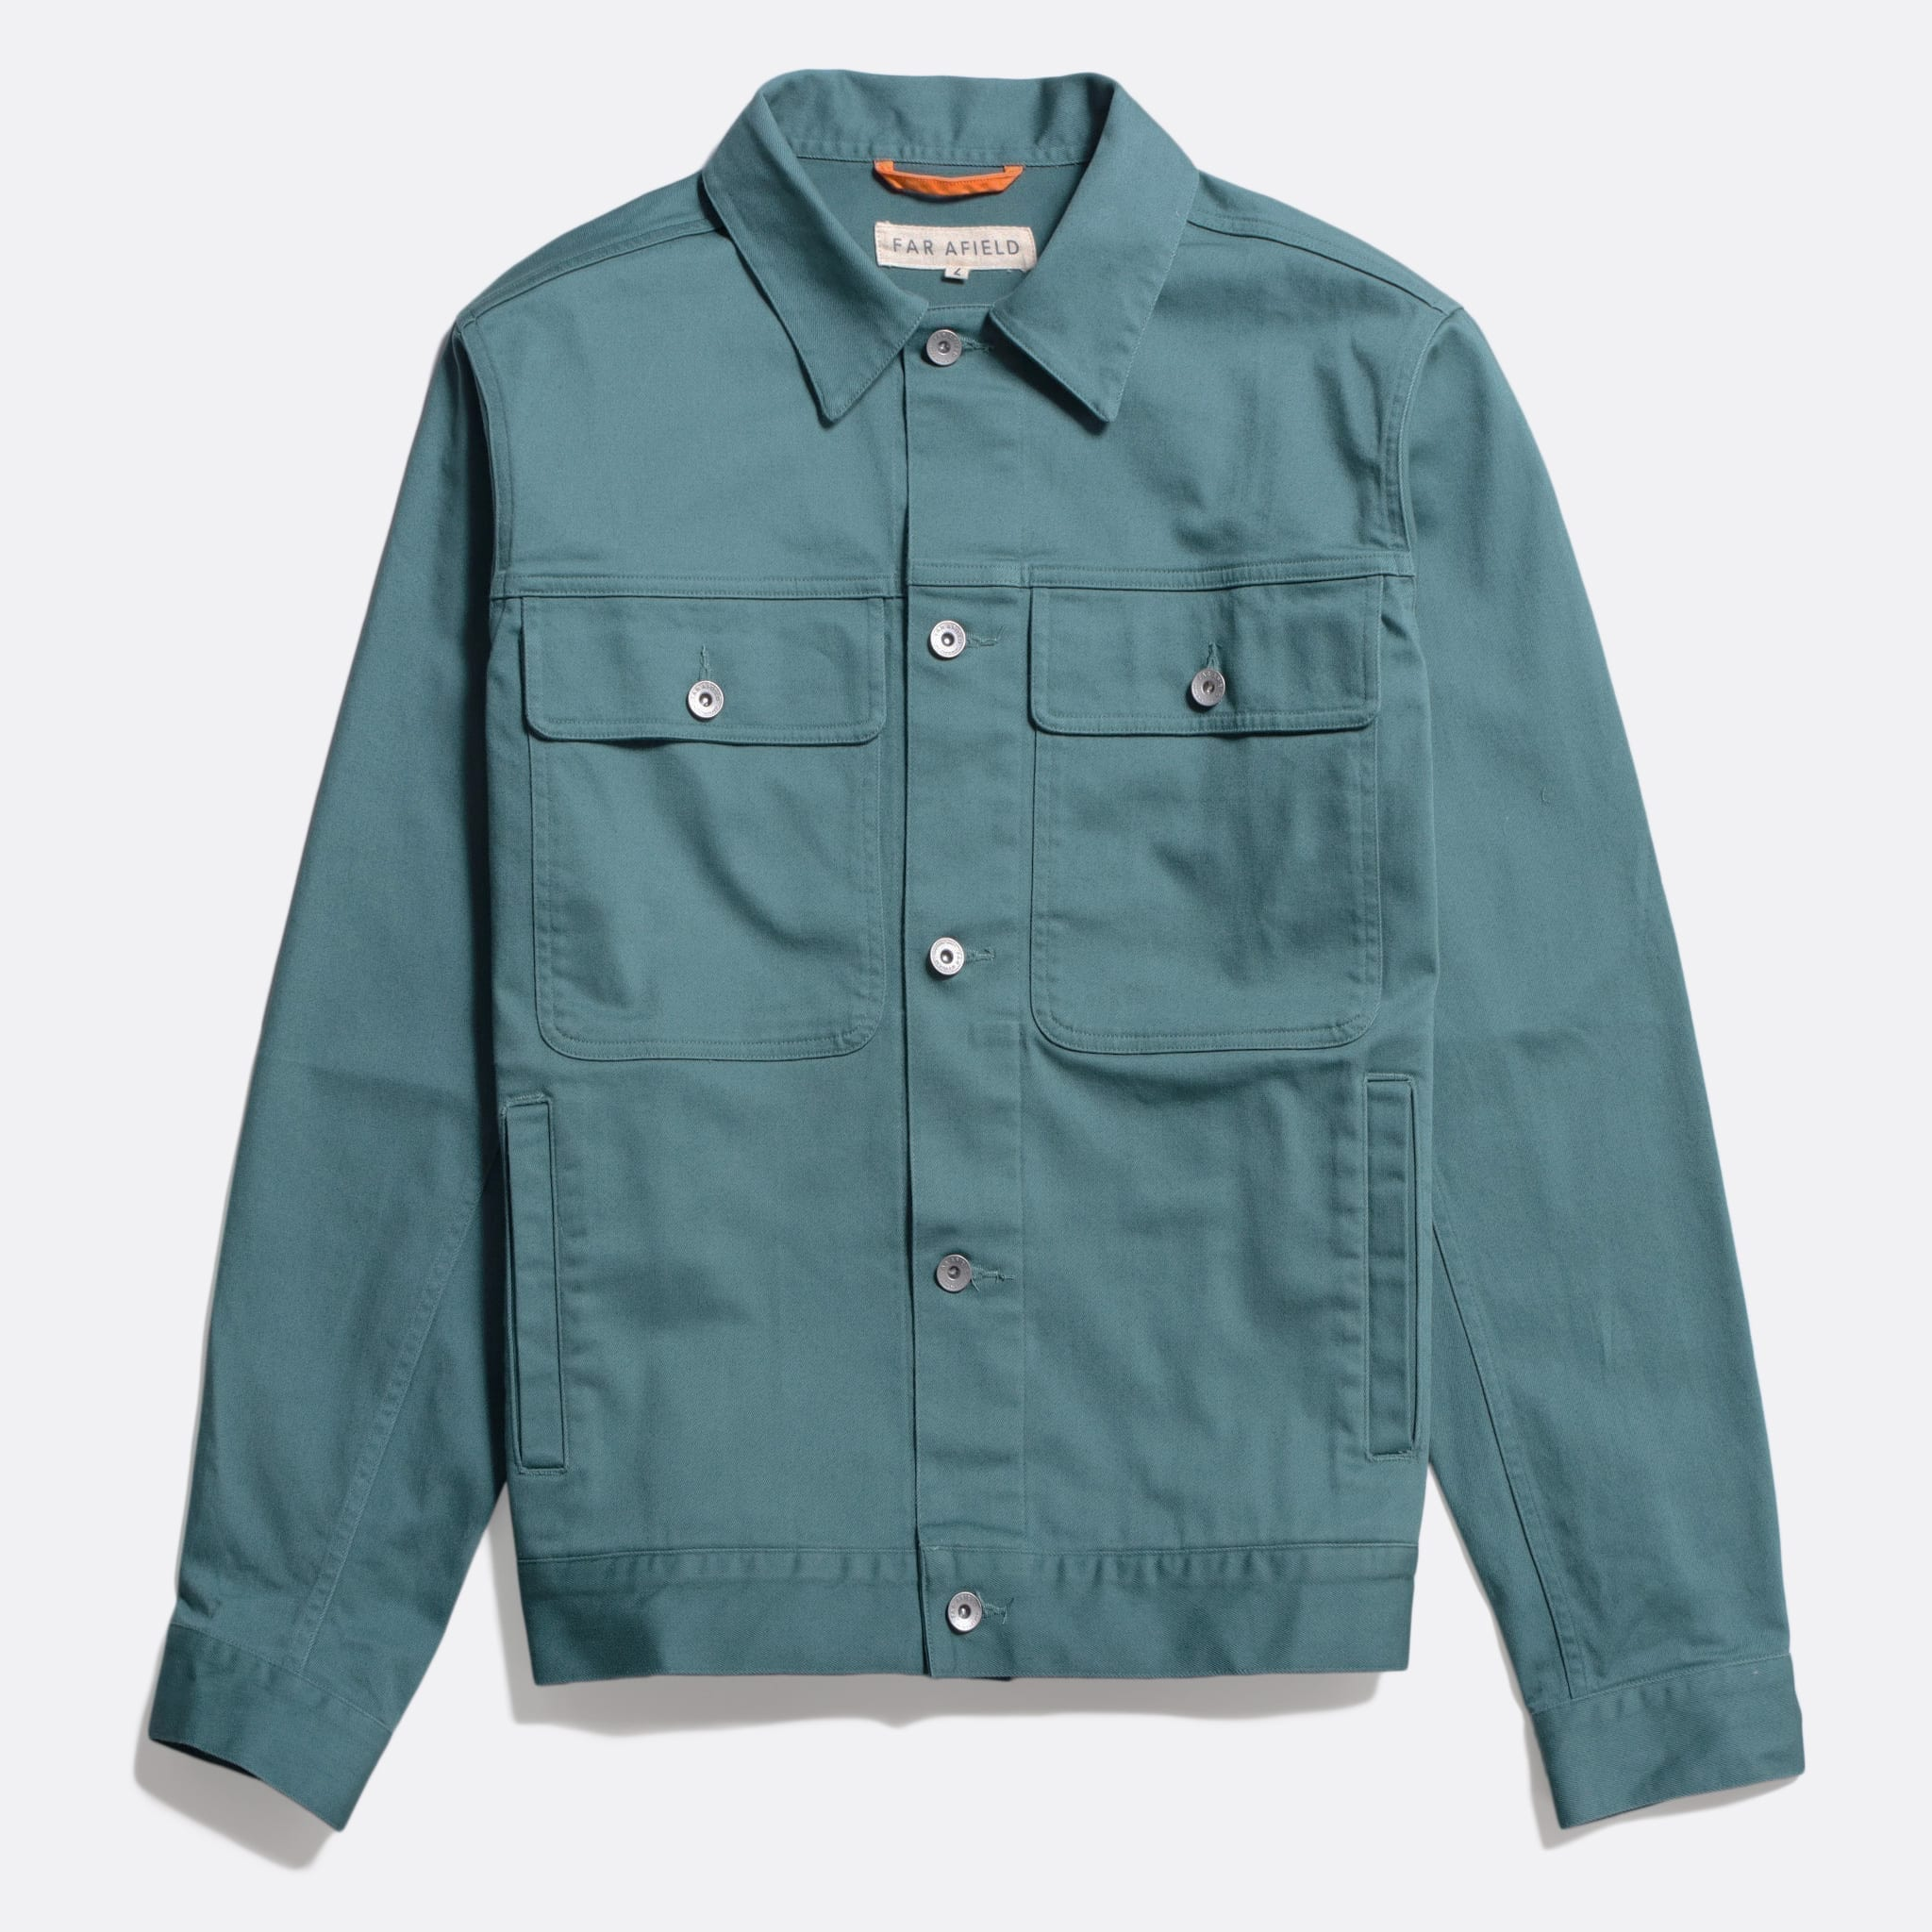 Far Afield Watts Jacket a Sagebrush Green Organic Cotton Twill Fabric Lightweight Trucker Classic Work